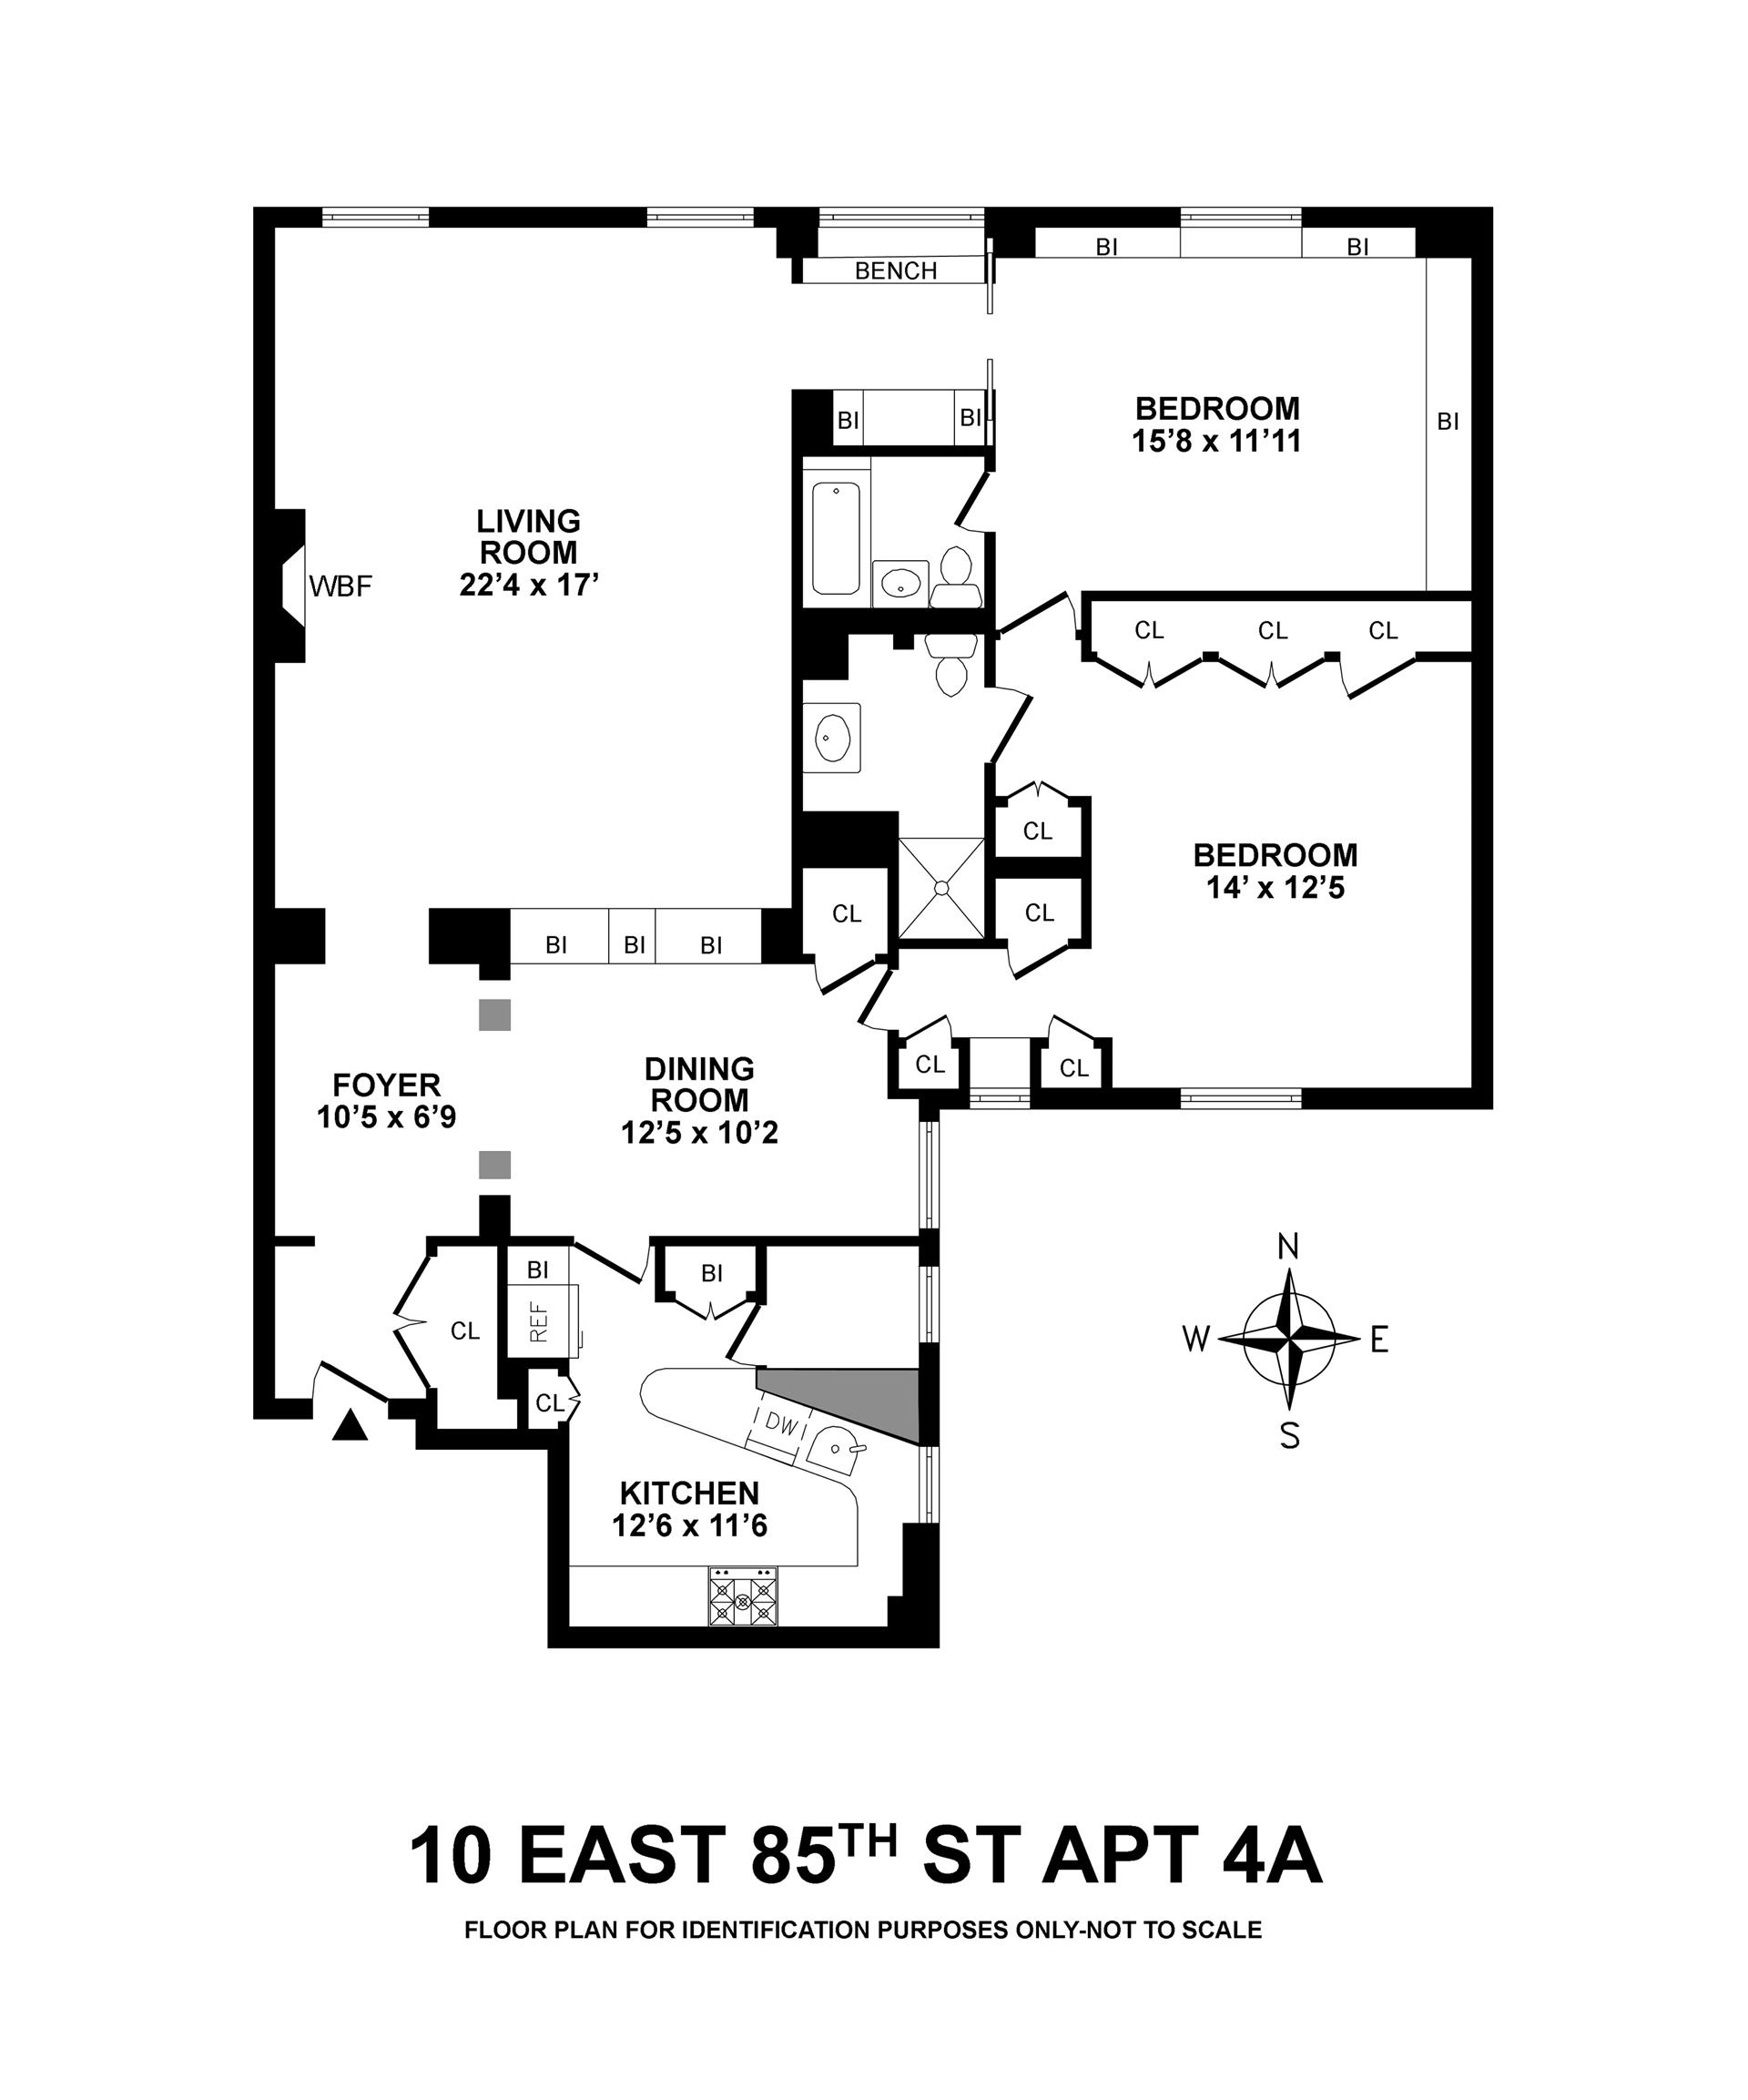 Floor plan of 10 East 85th Street, Inc., 10 East 85th St, 4A - Upper East Side, New York